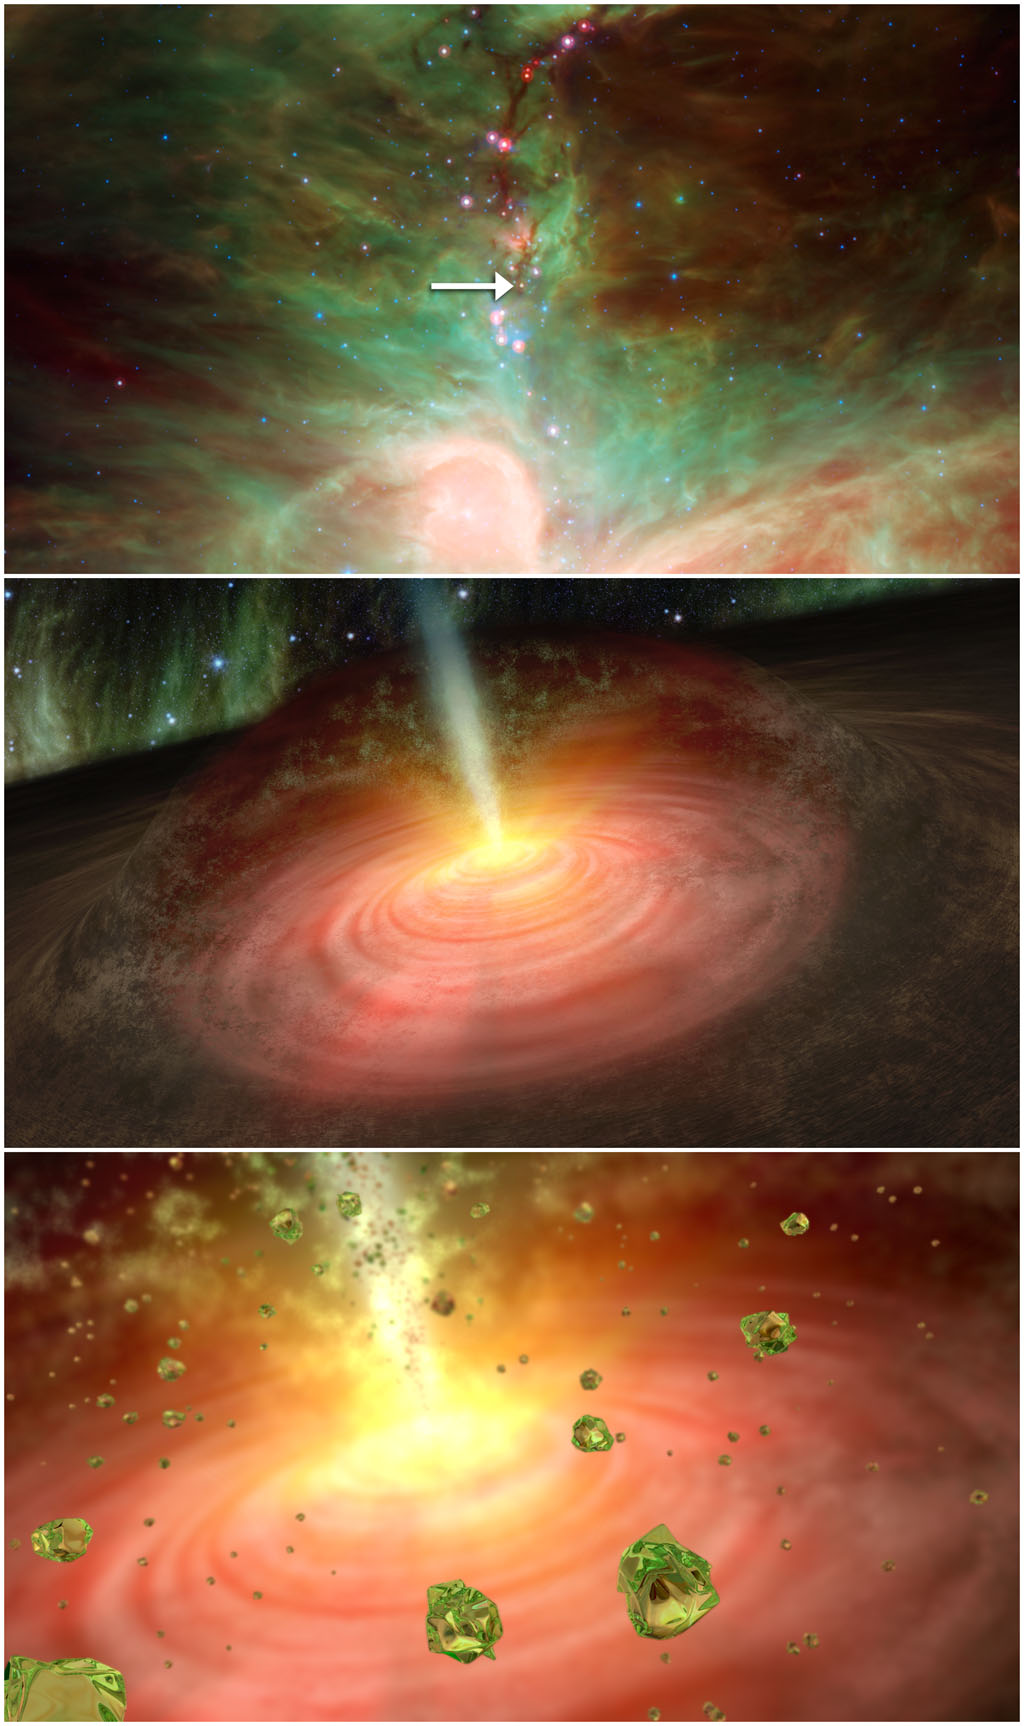 Using NASA's Spitzer Space Telescope, astronomers have, for the first time, found signatures of silicate crystals around a newly forming protostar in the constellation of Orion.